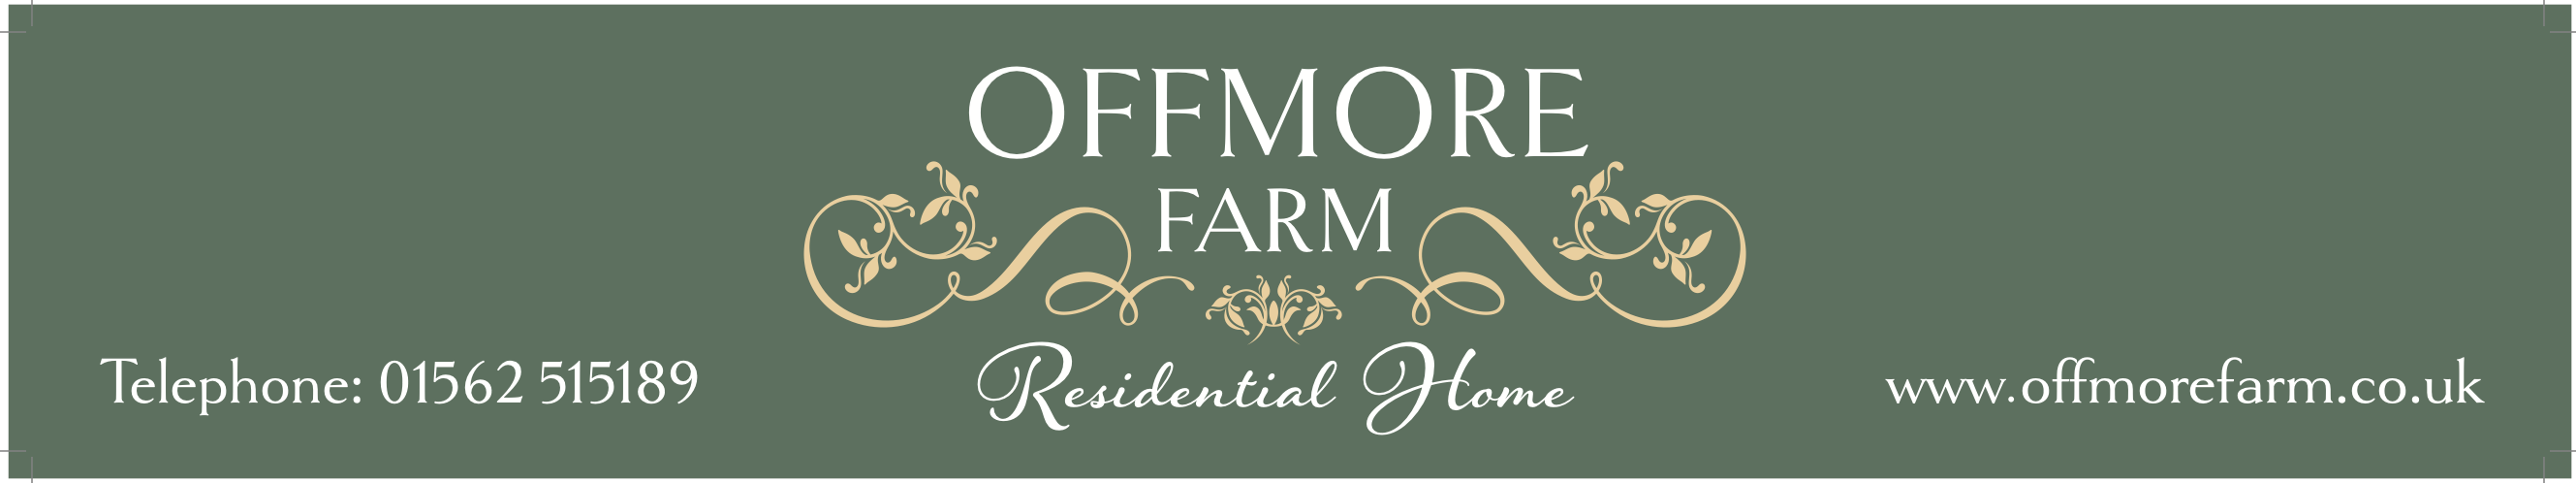 Offmore Farm